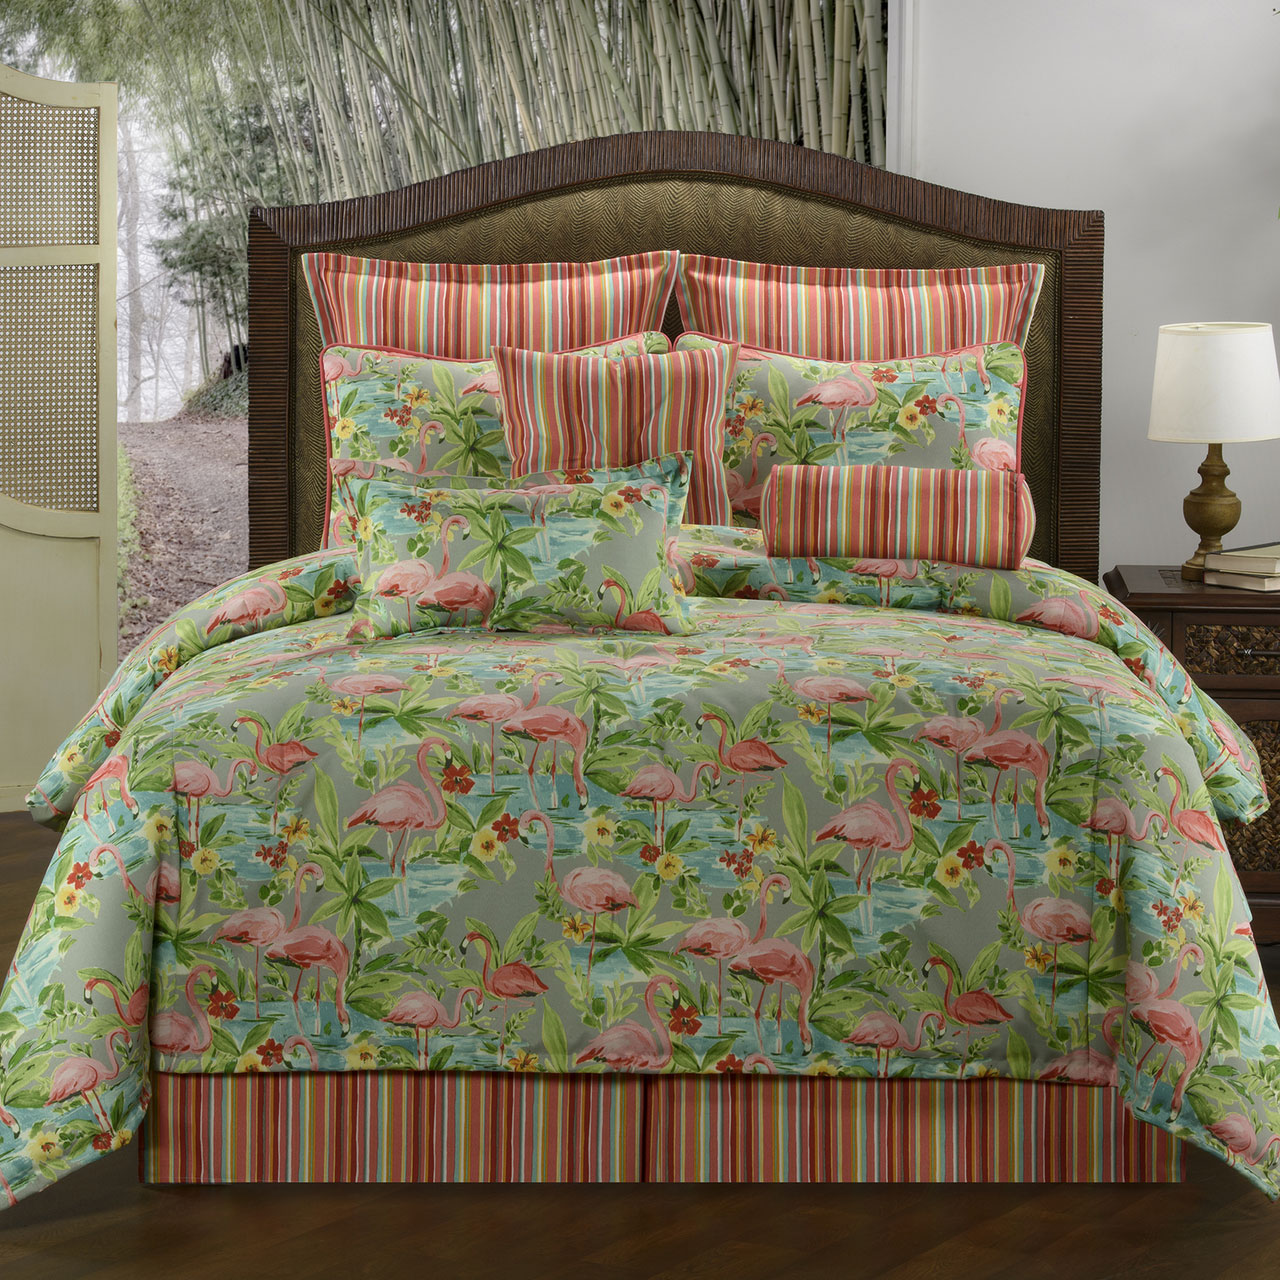 Tan Duvet Cover King Flamingo By Victor Mill - Beddingsuperstore.com